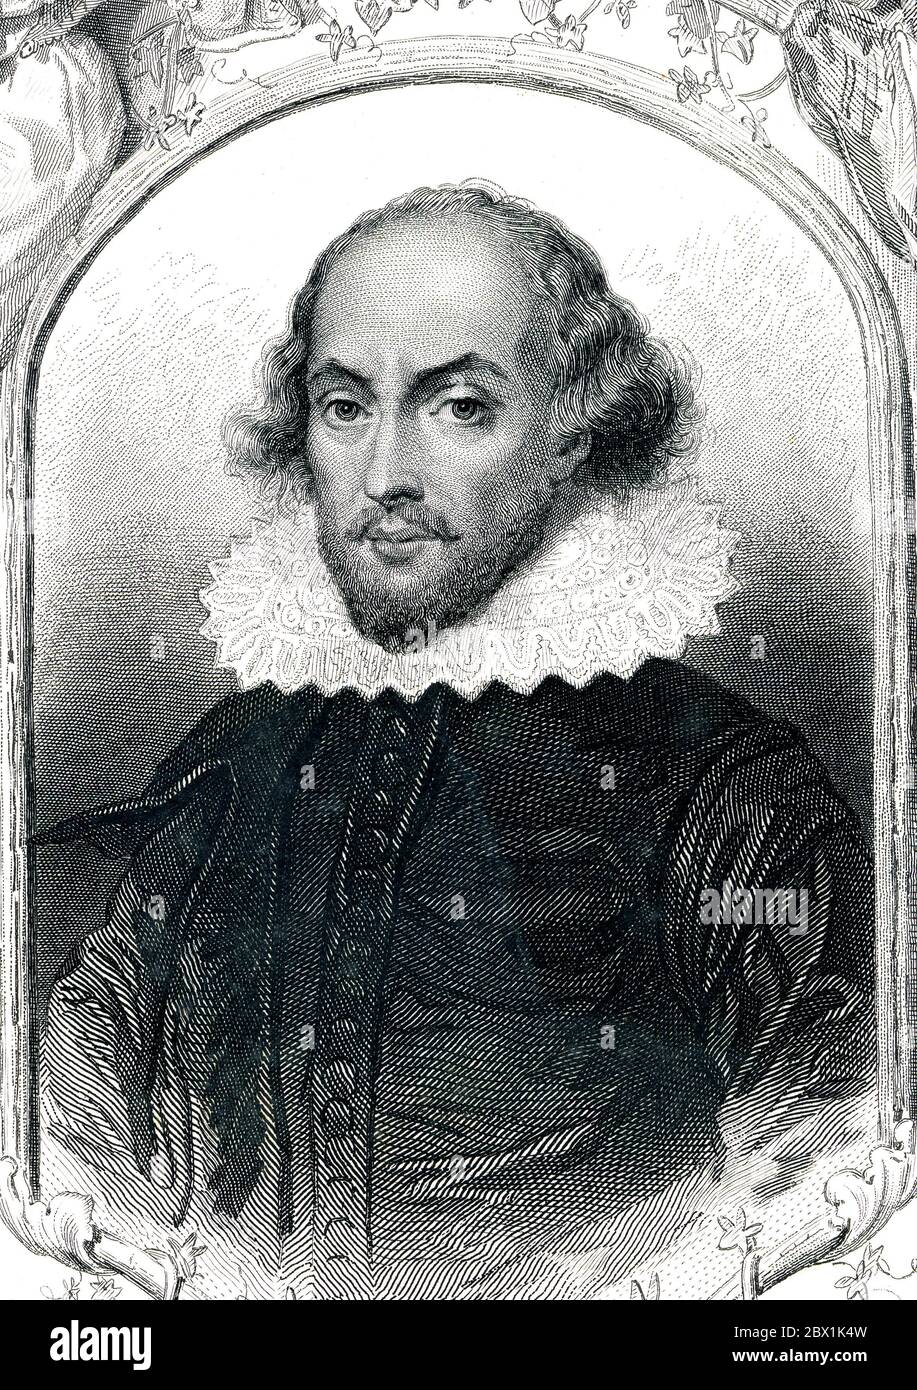 William Shakespeare, 1564-1616, English poet and playwright, 1850, France Stock Photo